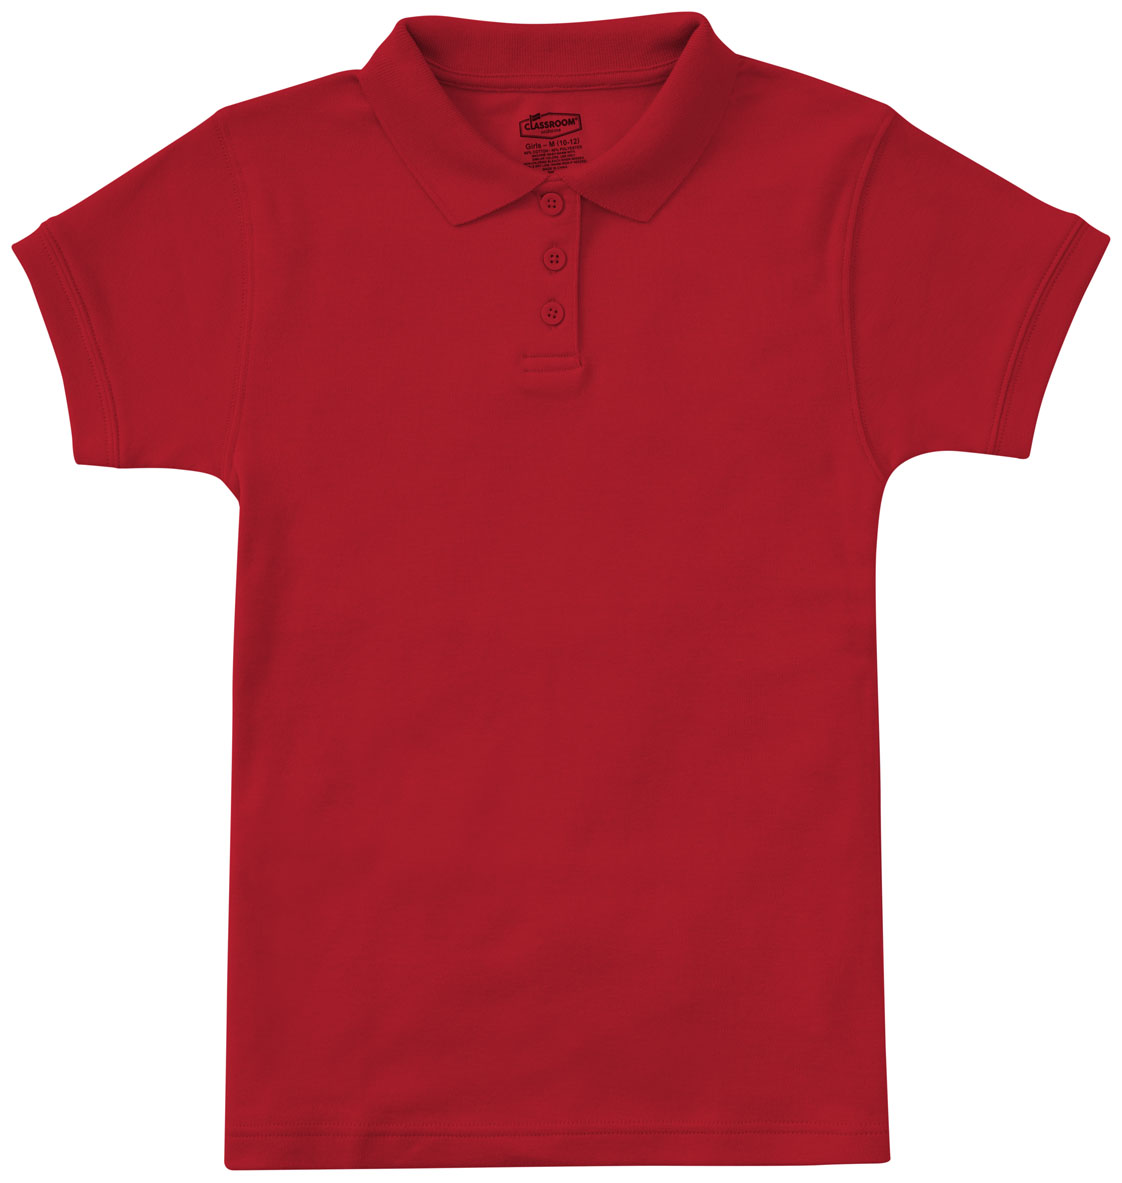 d3bab100a Classroom Junior SS Fitted Interlock Polo in Red 58584-RED from ...